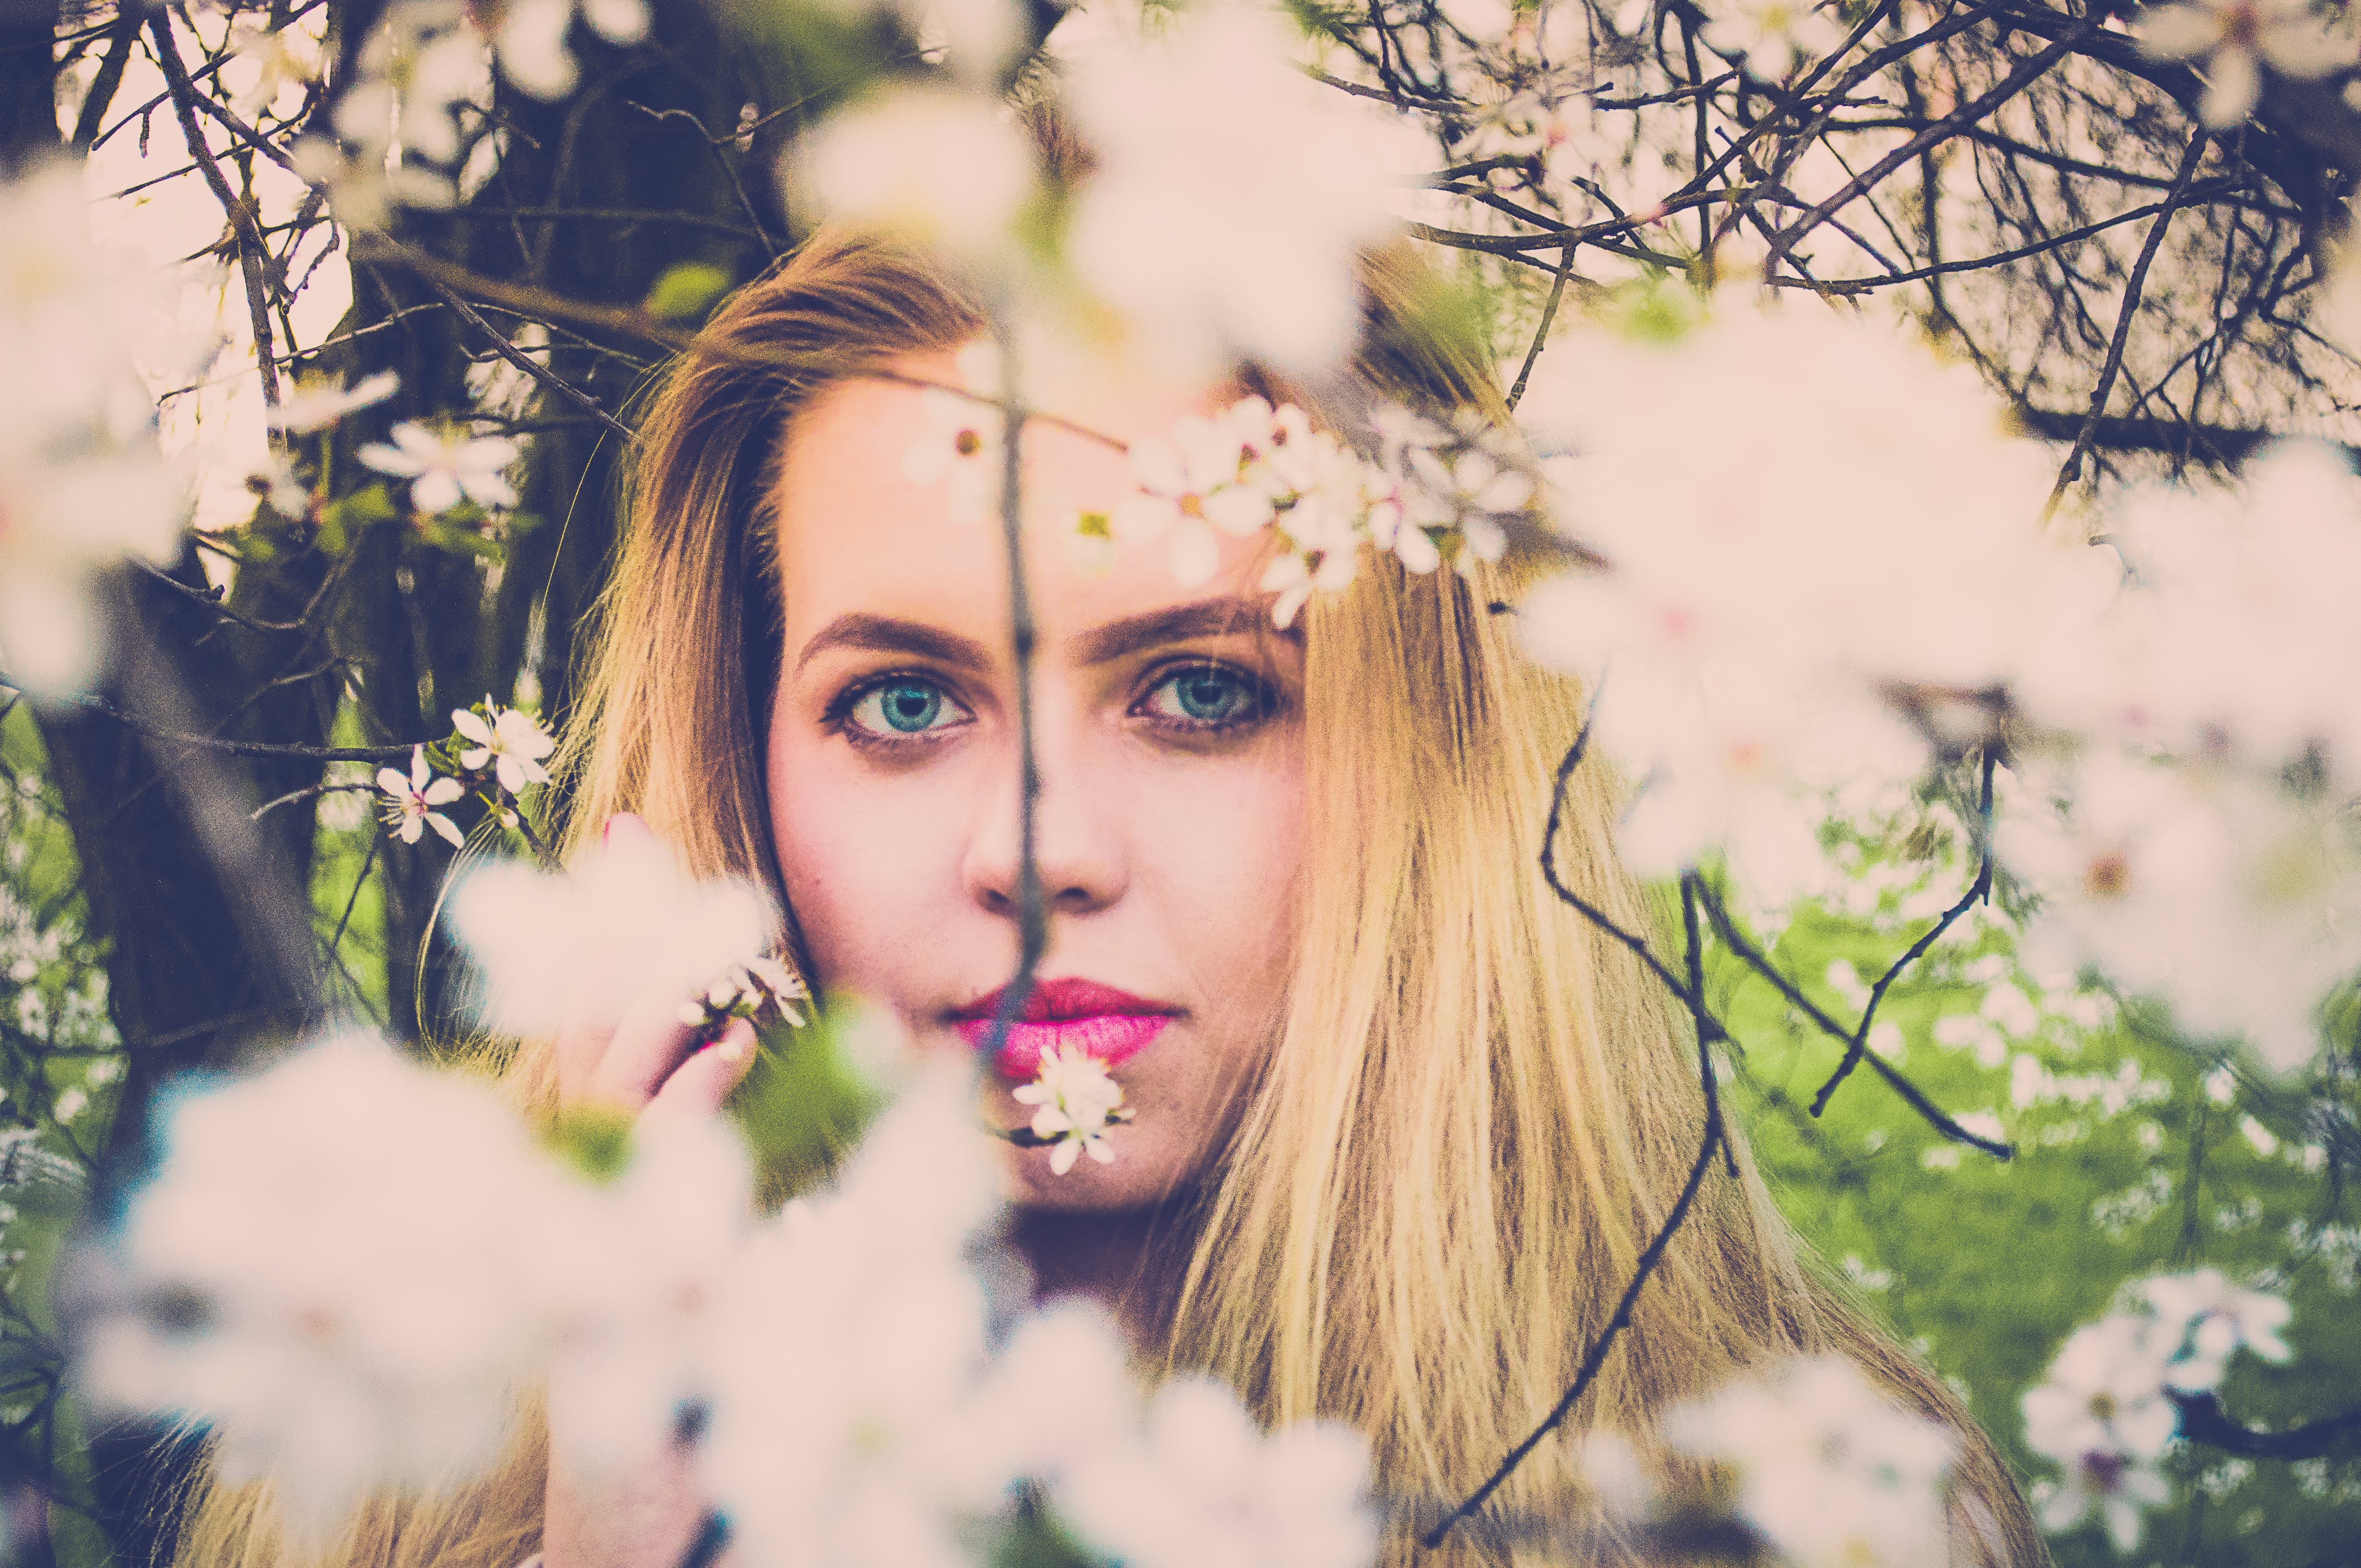 Woman With Pink Lipsticks and Blonde Taking Photo With White Petaled Flowers